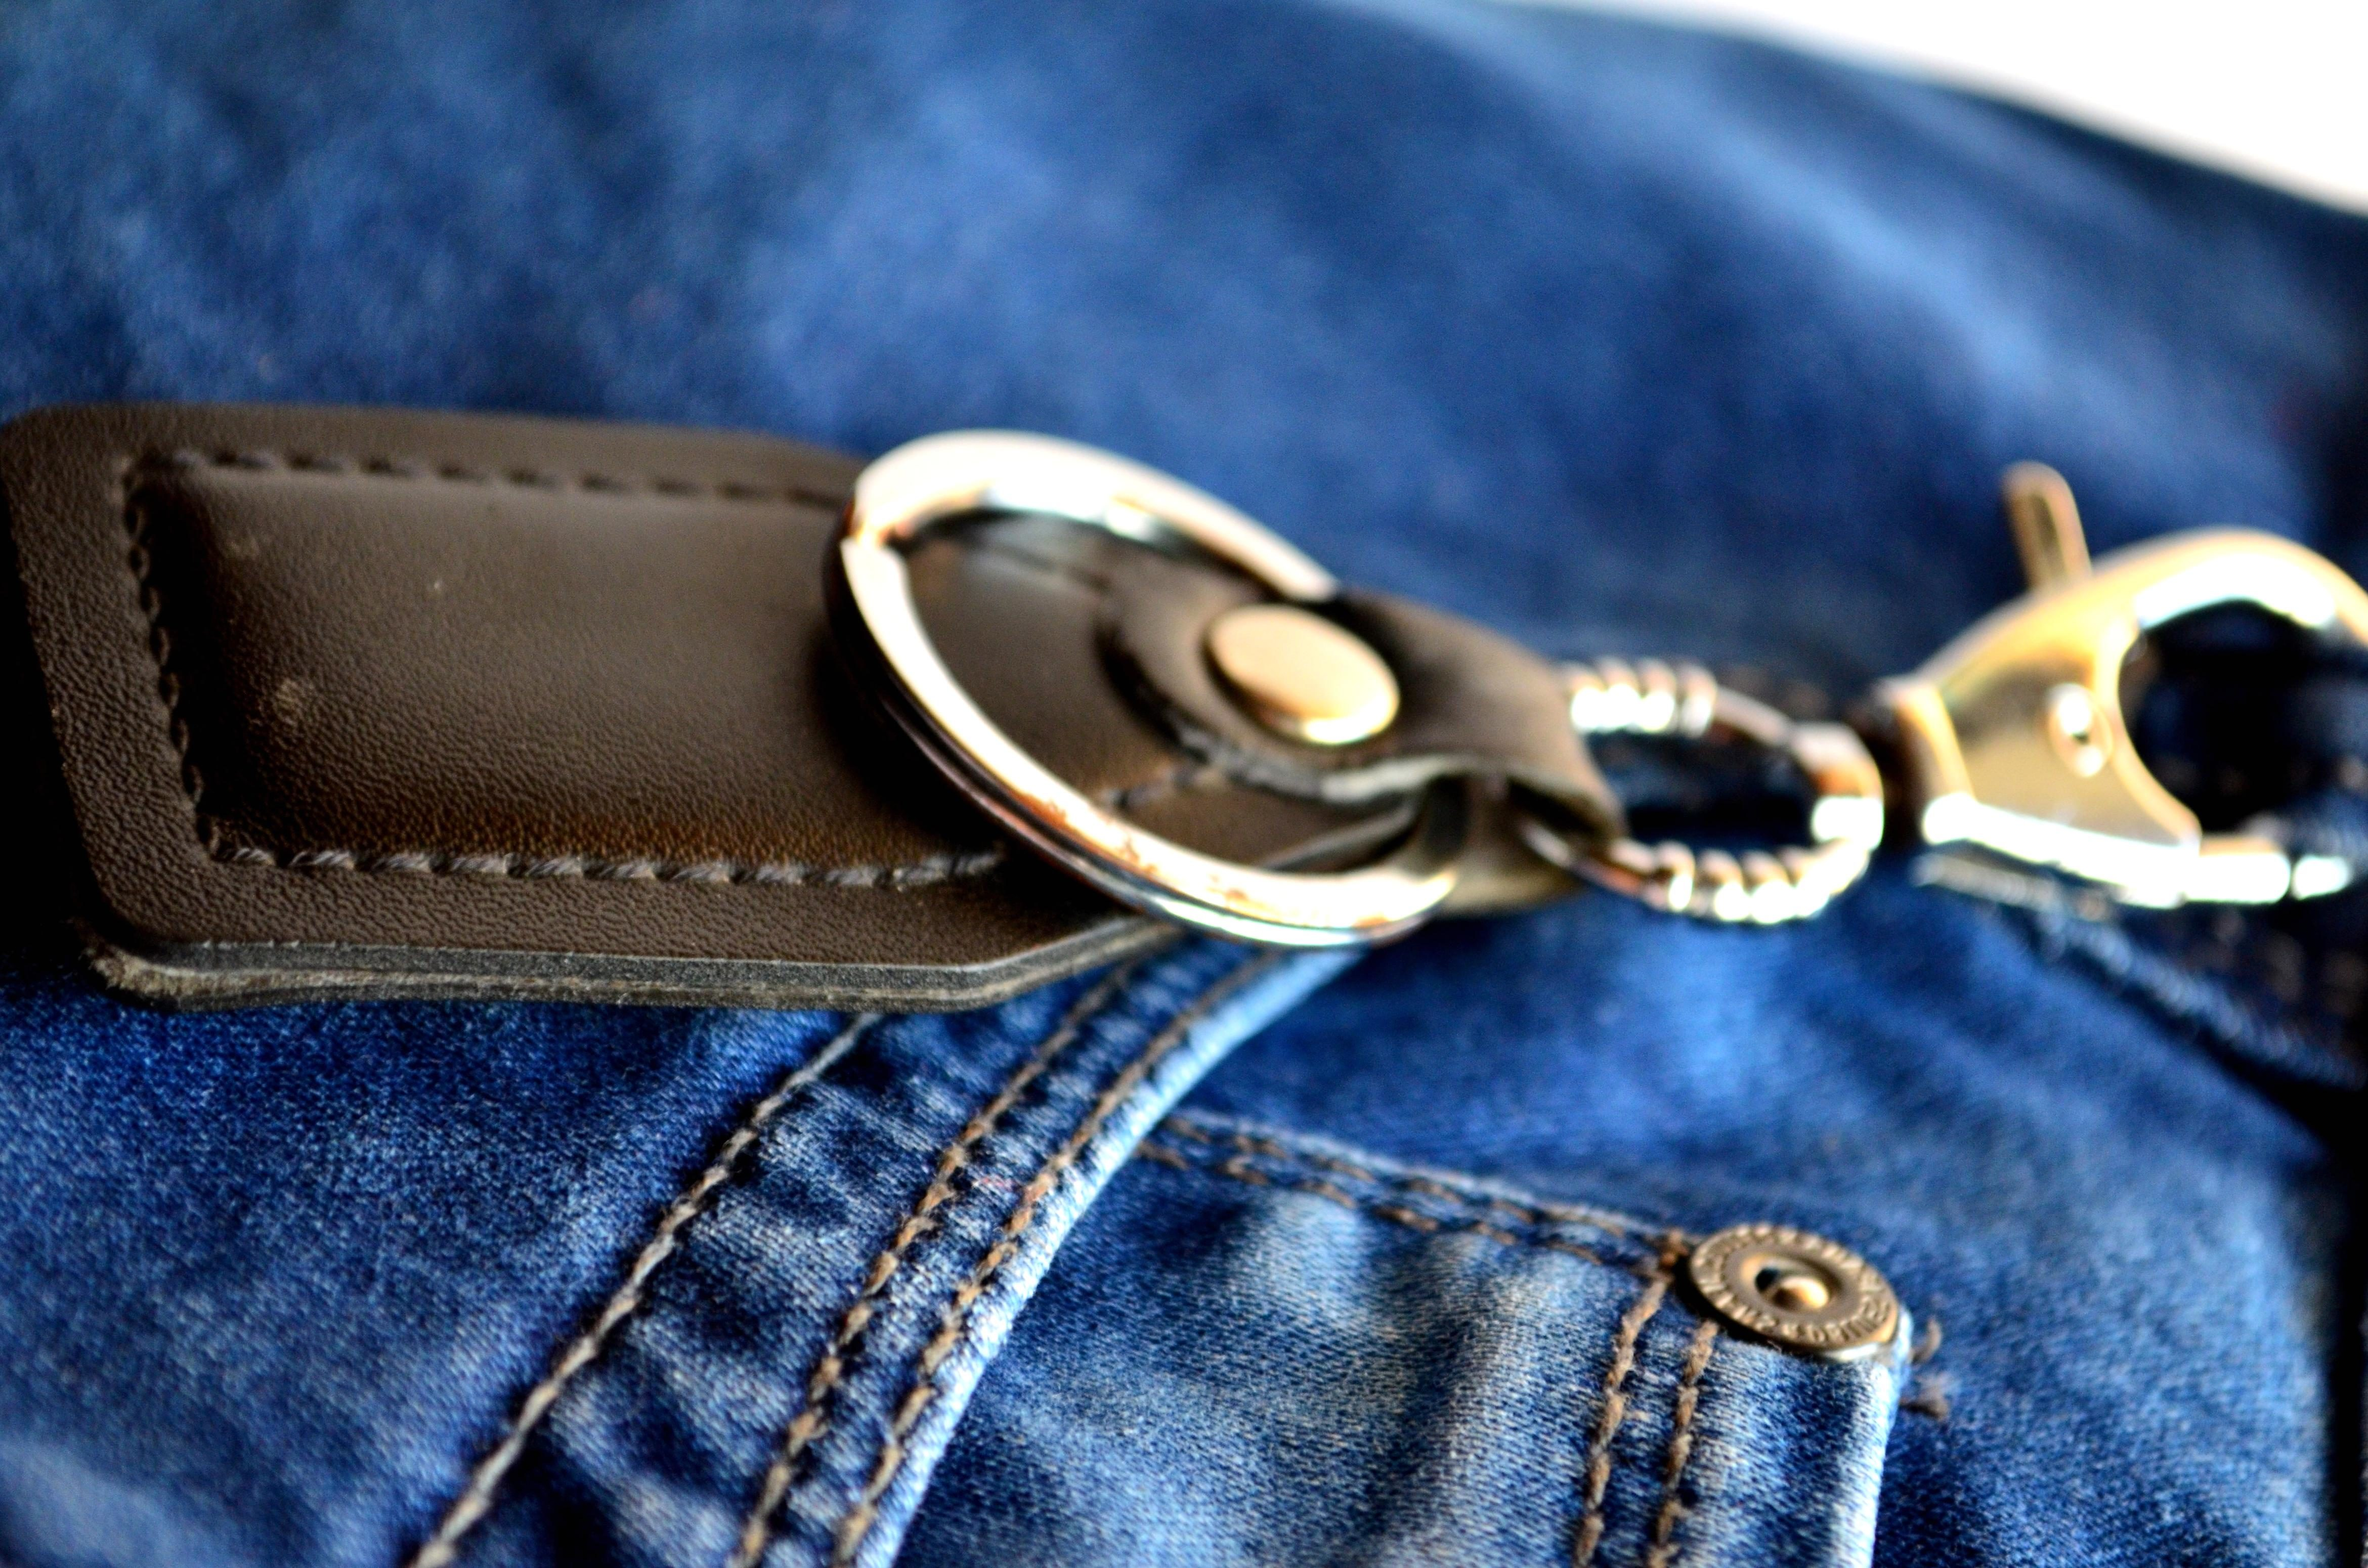 order online great fit latest Free picture: jeans, keychain, textile, cloth, object, fastener